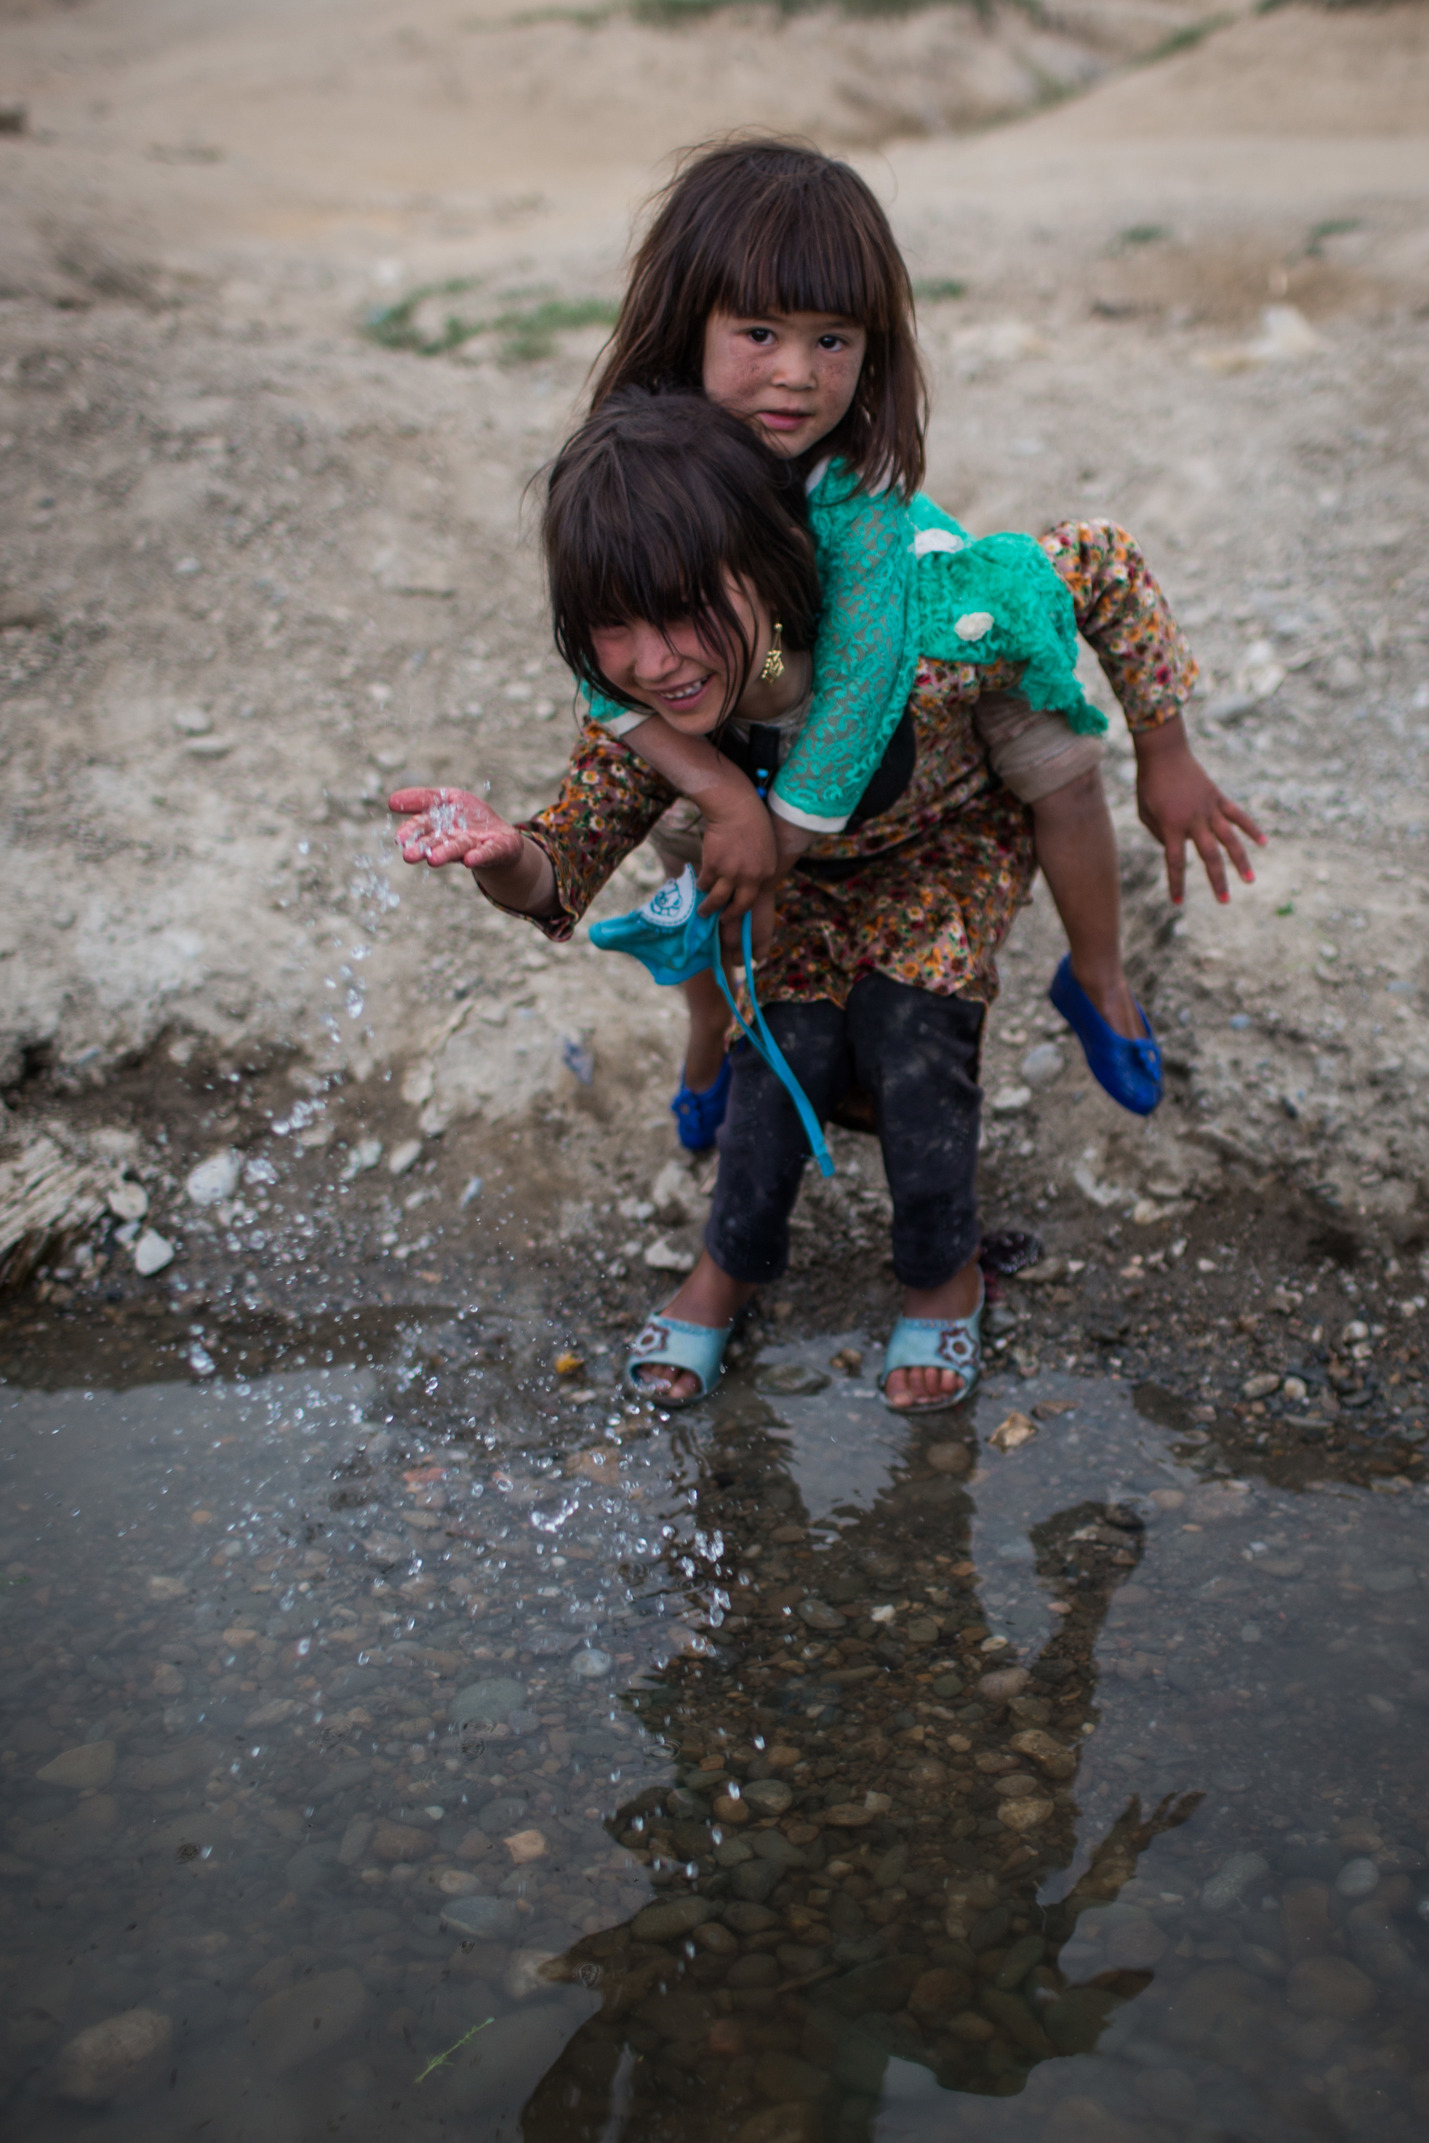 A little girl is pictured standing with her toes dipped in a puddle of water with pebbles at the bottom. She is laughing as she splashes some water with her hand. Another girl is on the first girls back with her arms wrapped around her neck.